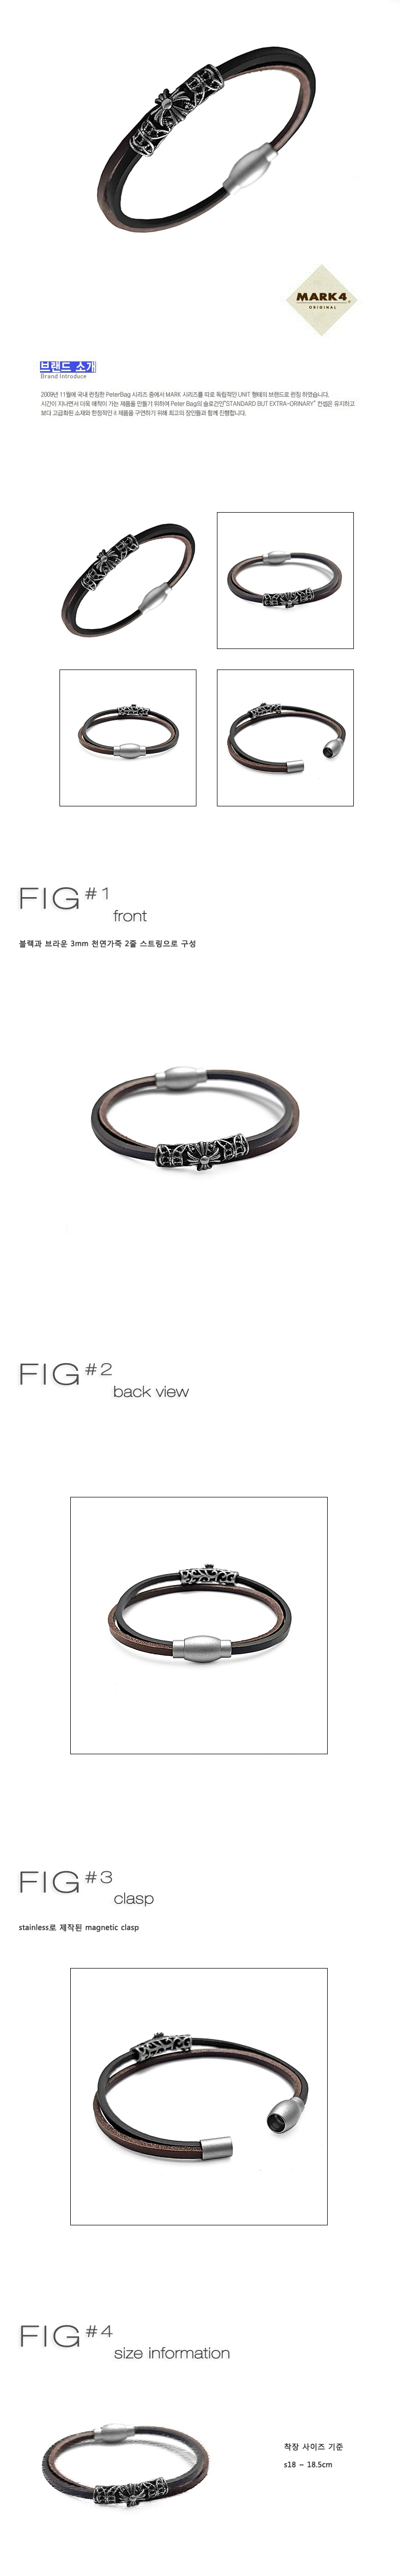 마크-4(MARK-4) [MARK-4] 2TONE STRAP LEATHER BRACELET